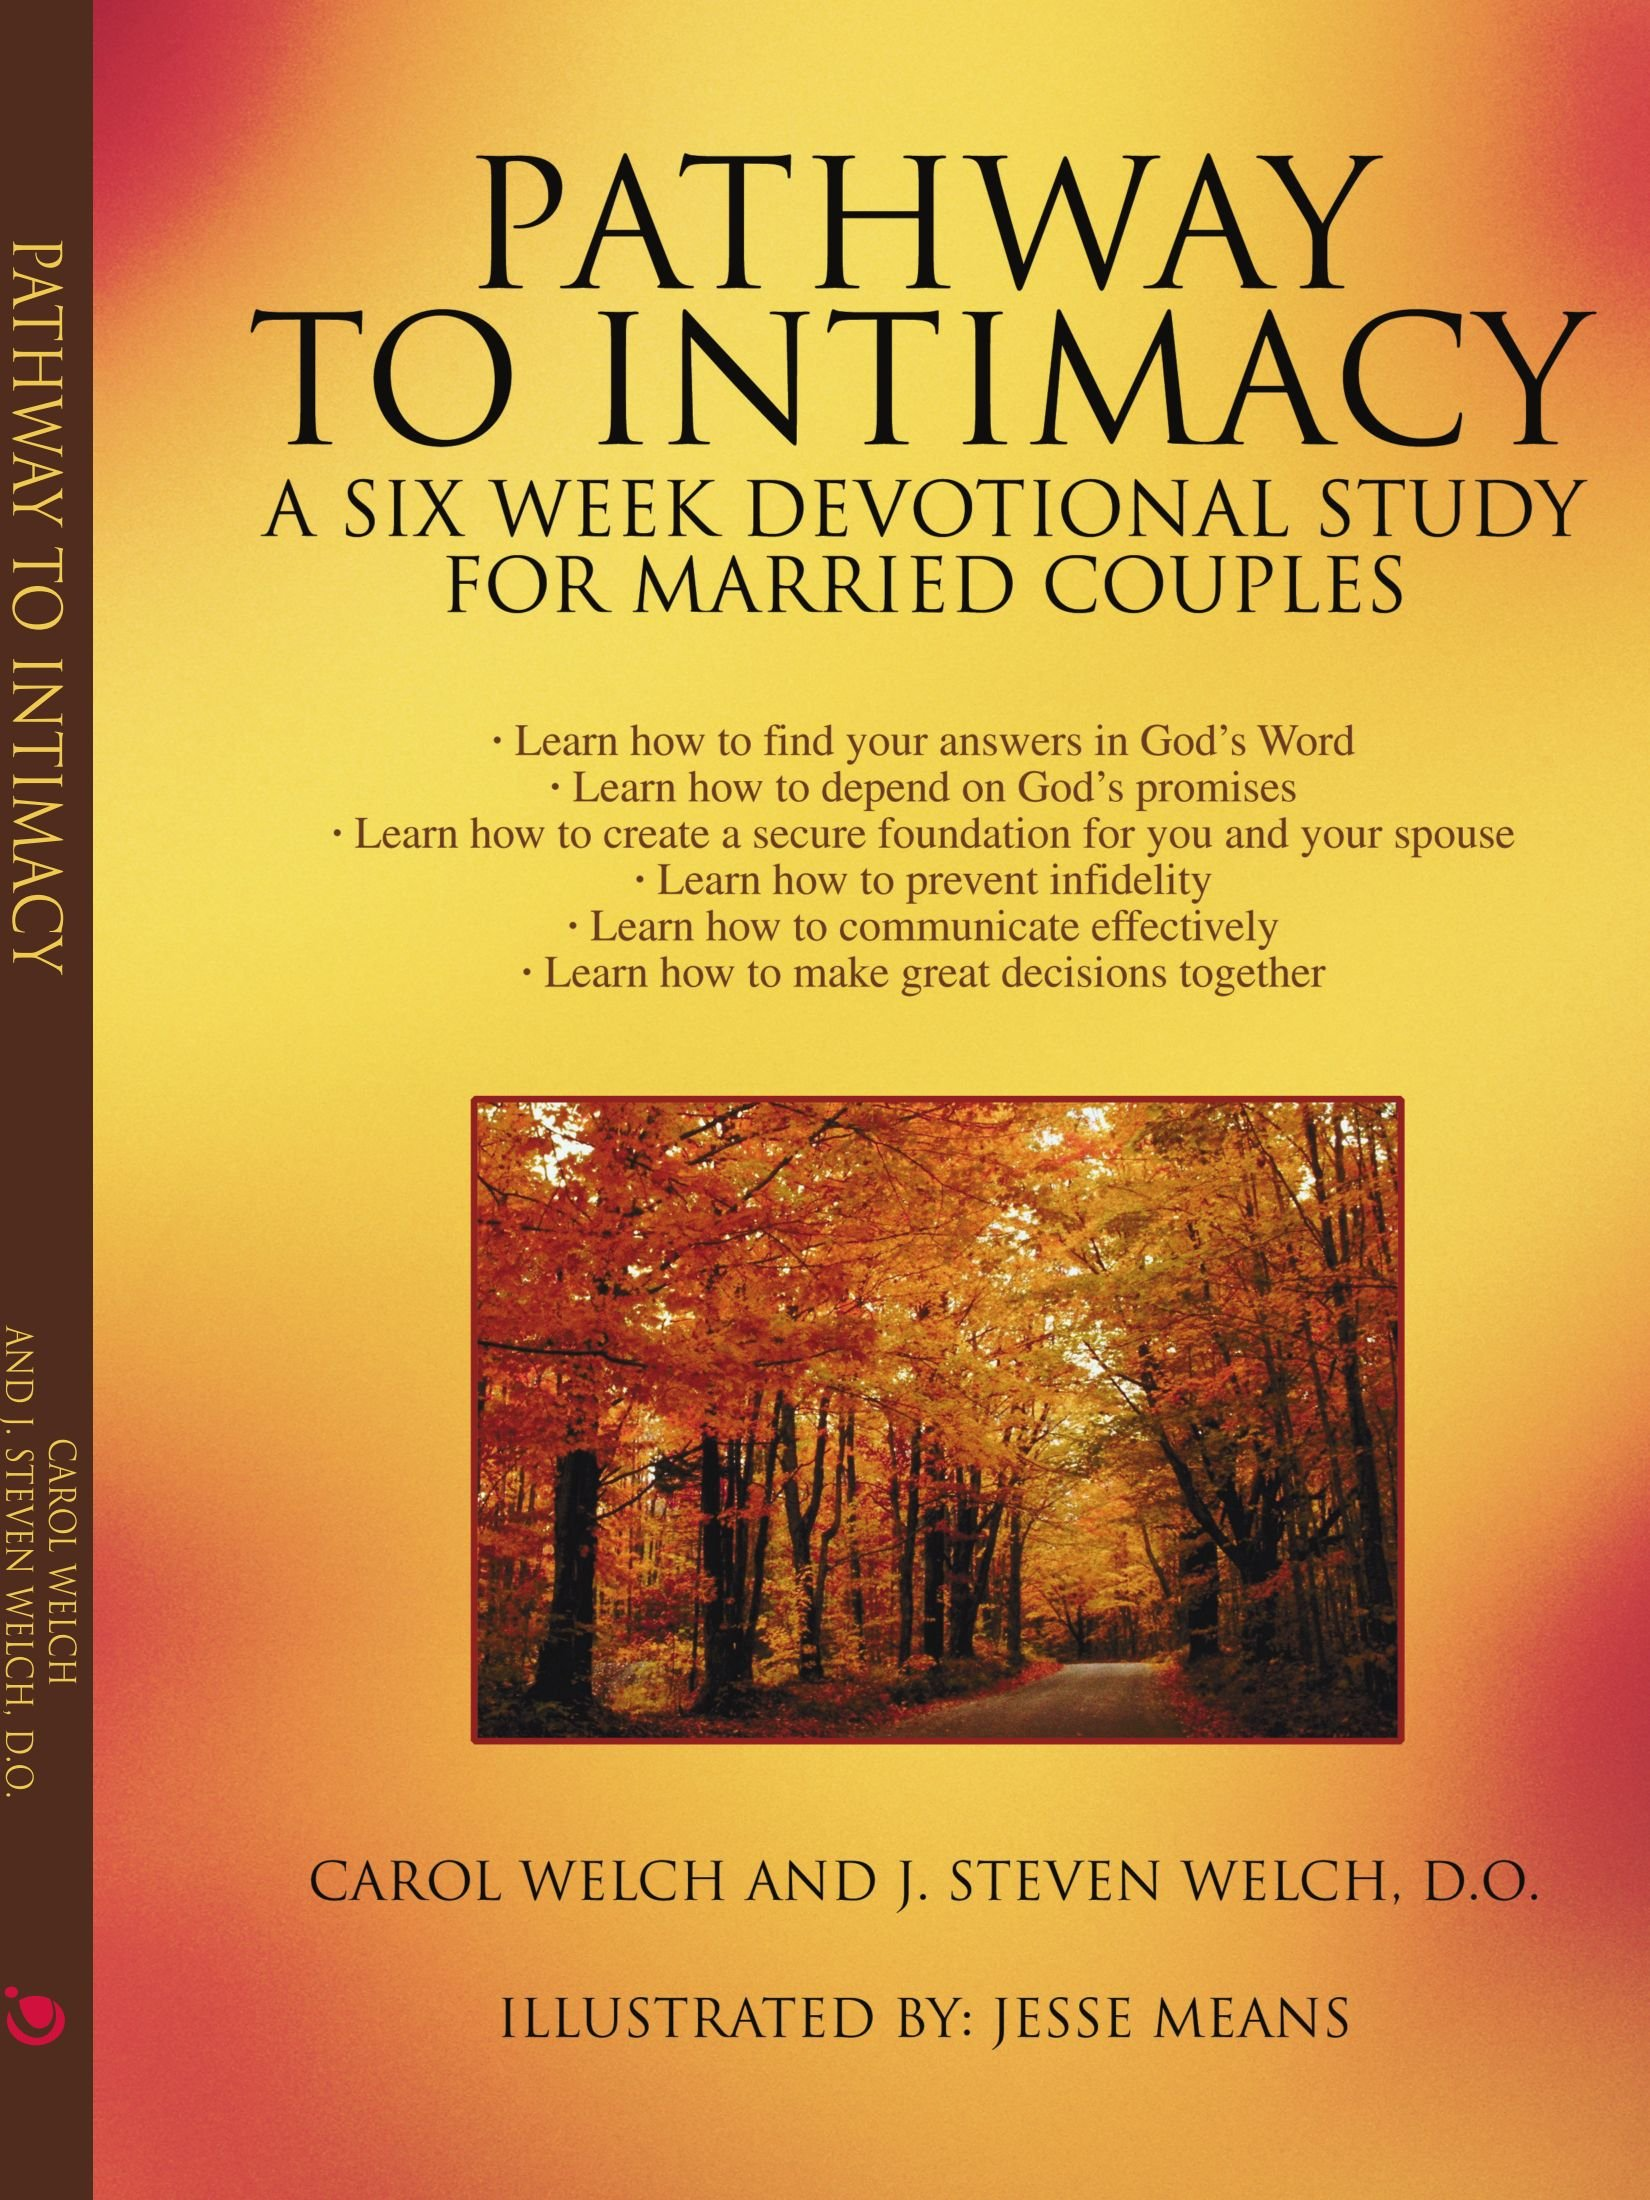 Download Pathway to Intimacy: A Six Week Devotional Study for Married Couples PDF